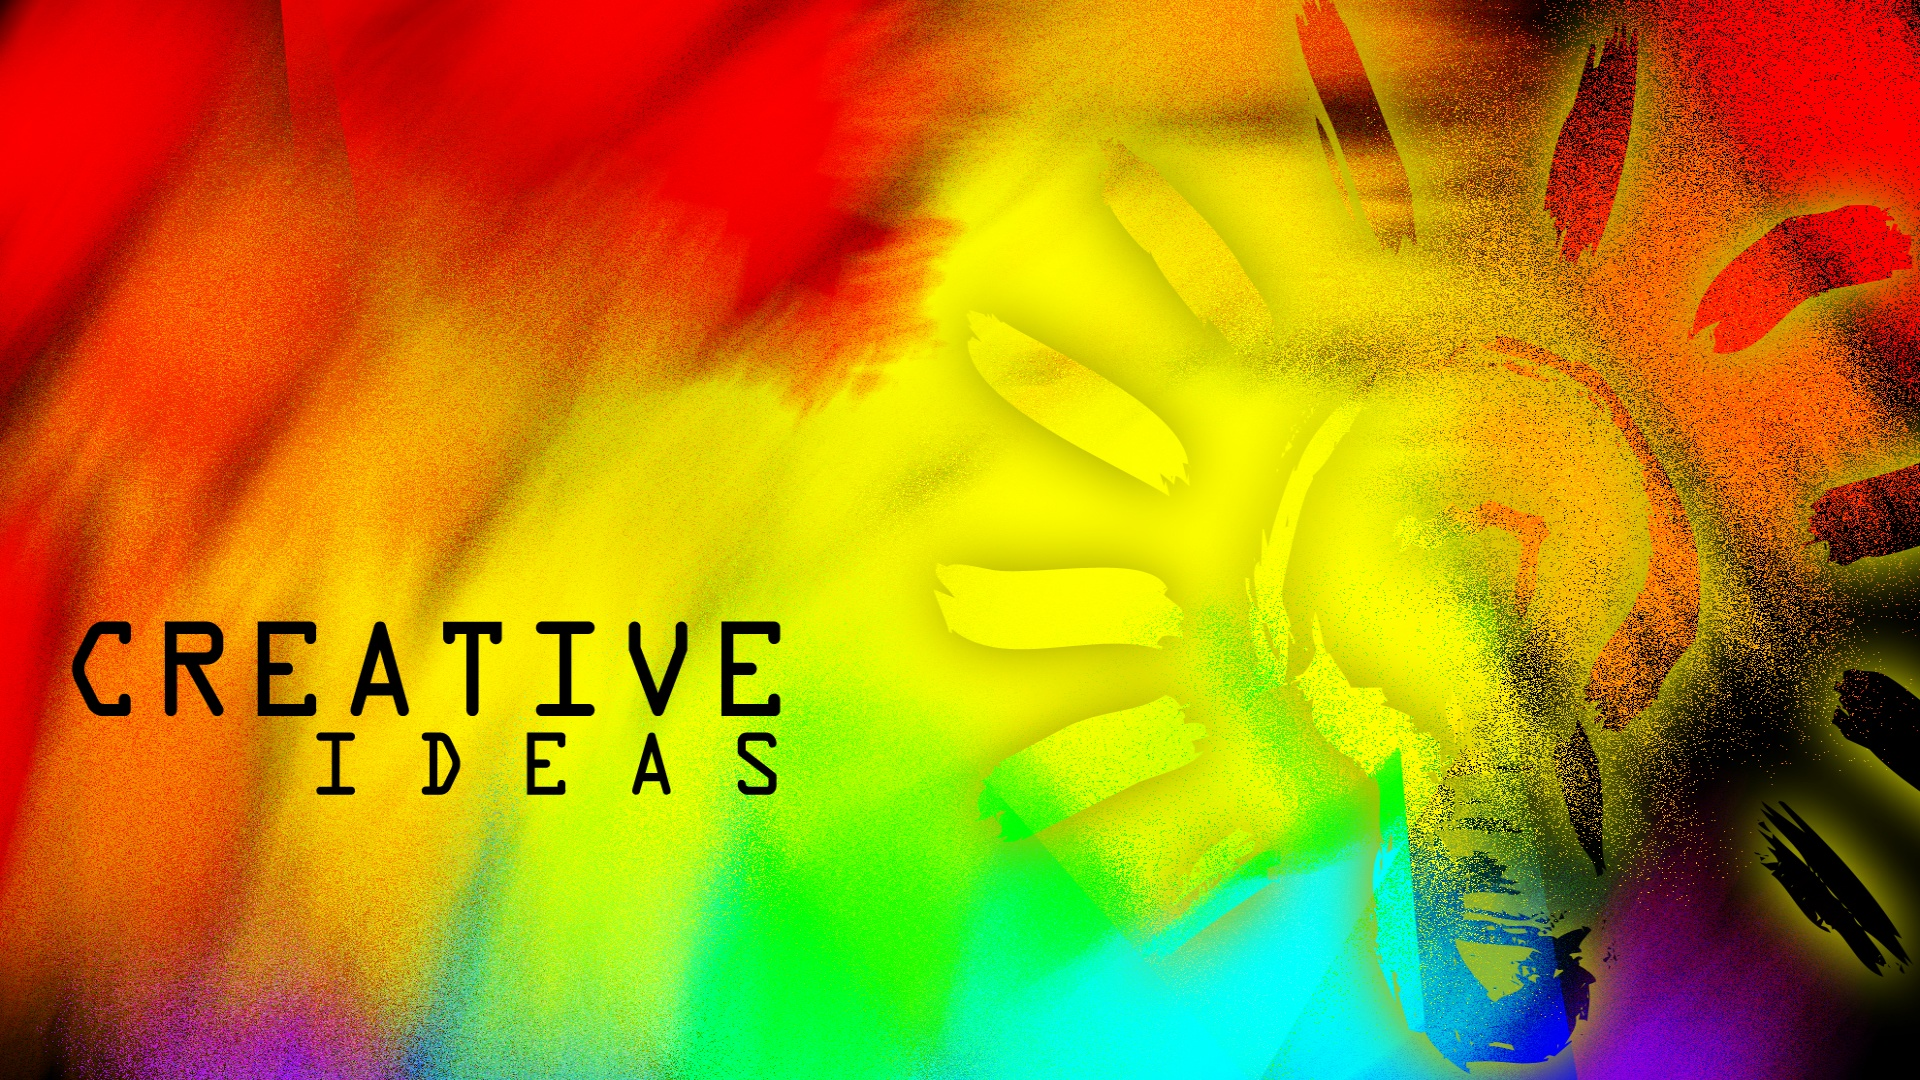 Creative Ideas Wallpapers 1920x1080 1250368